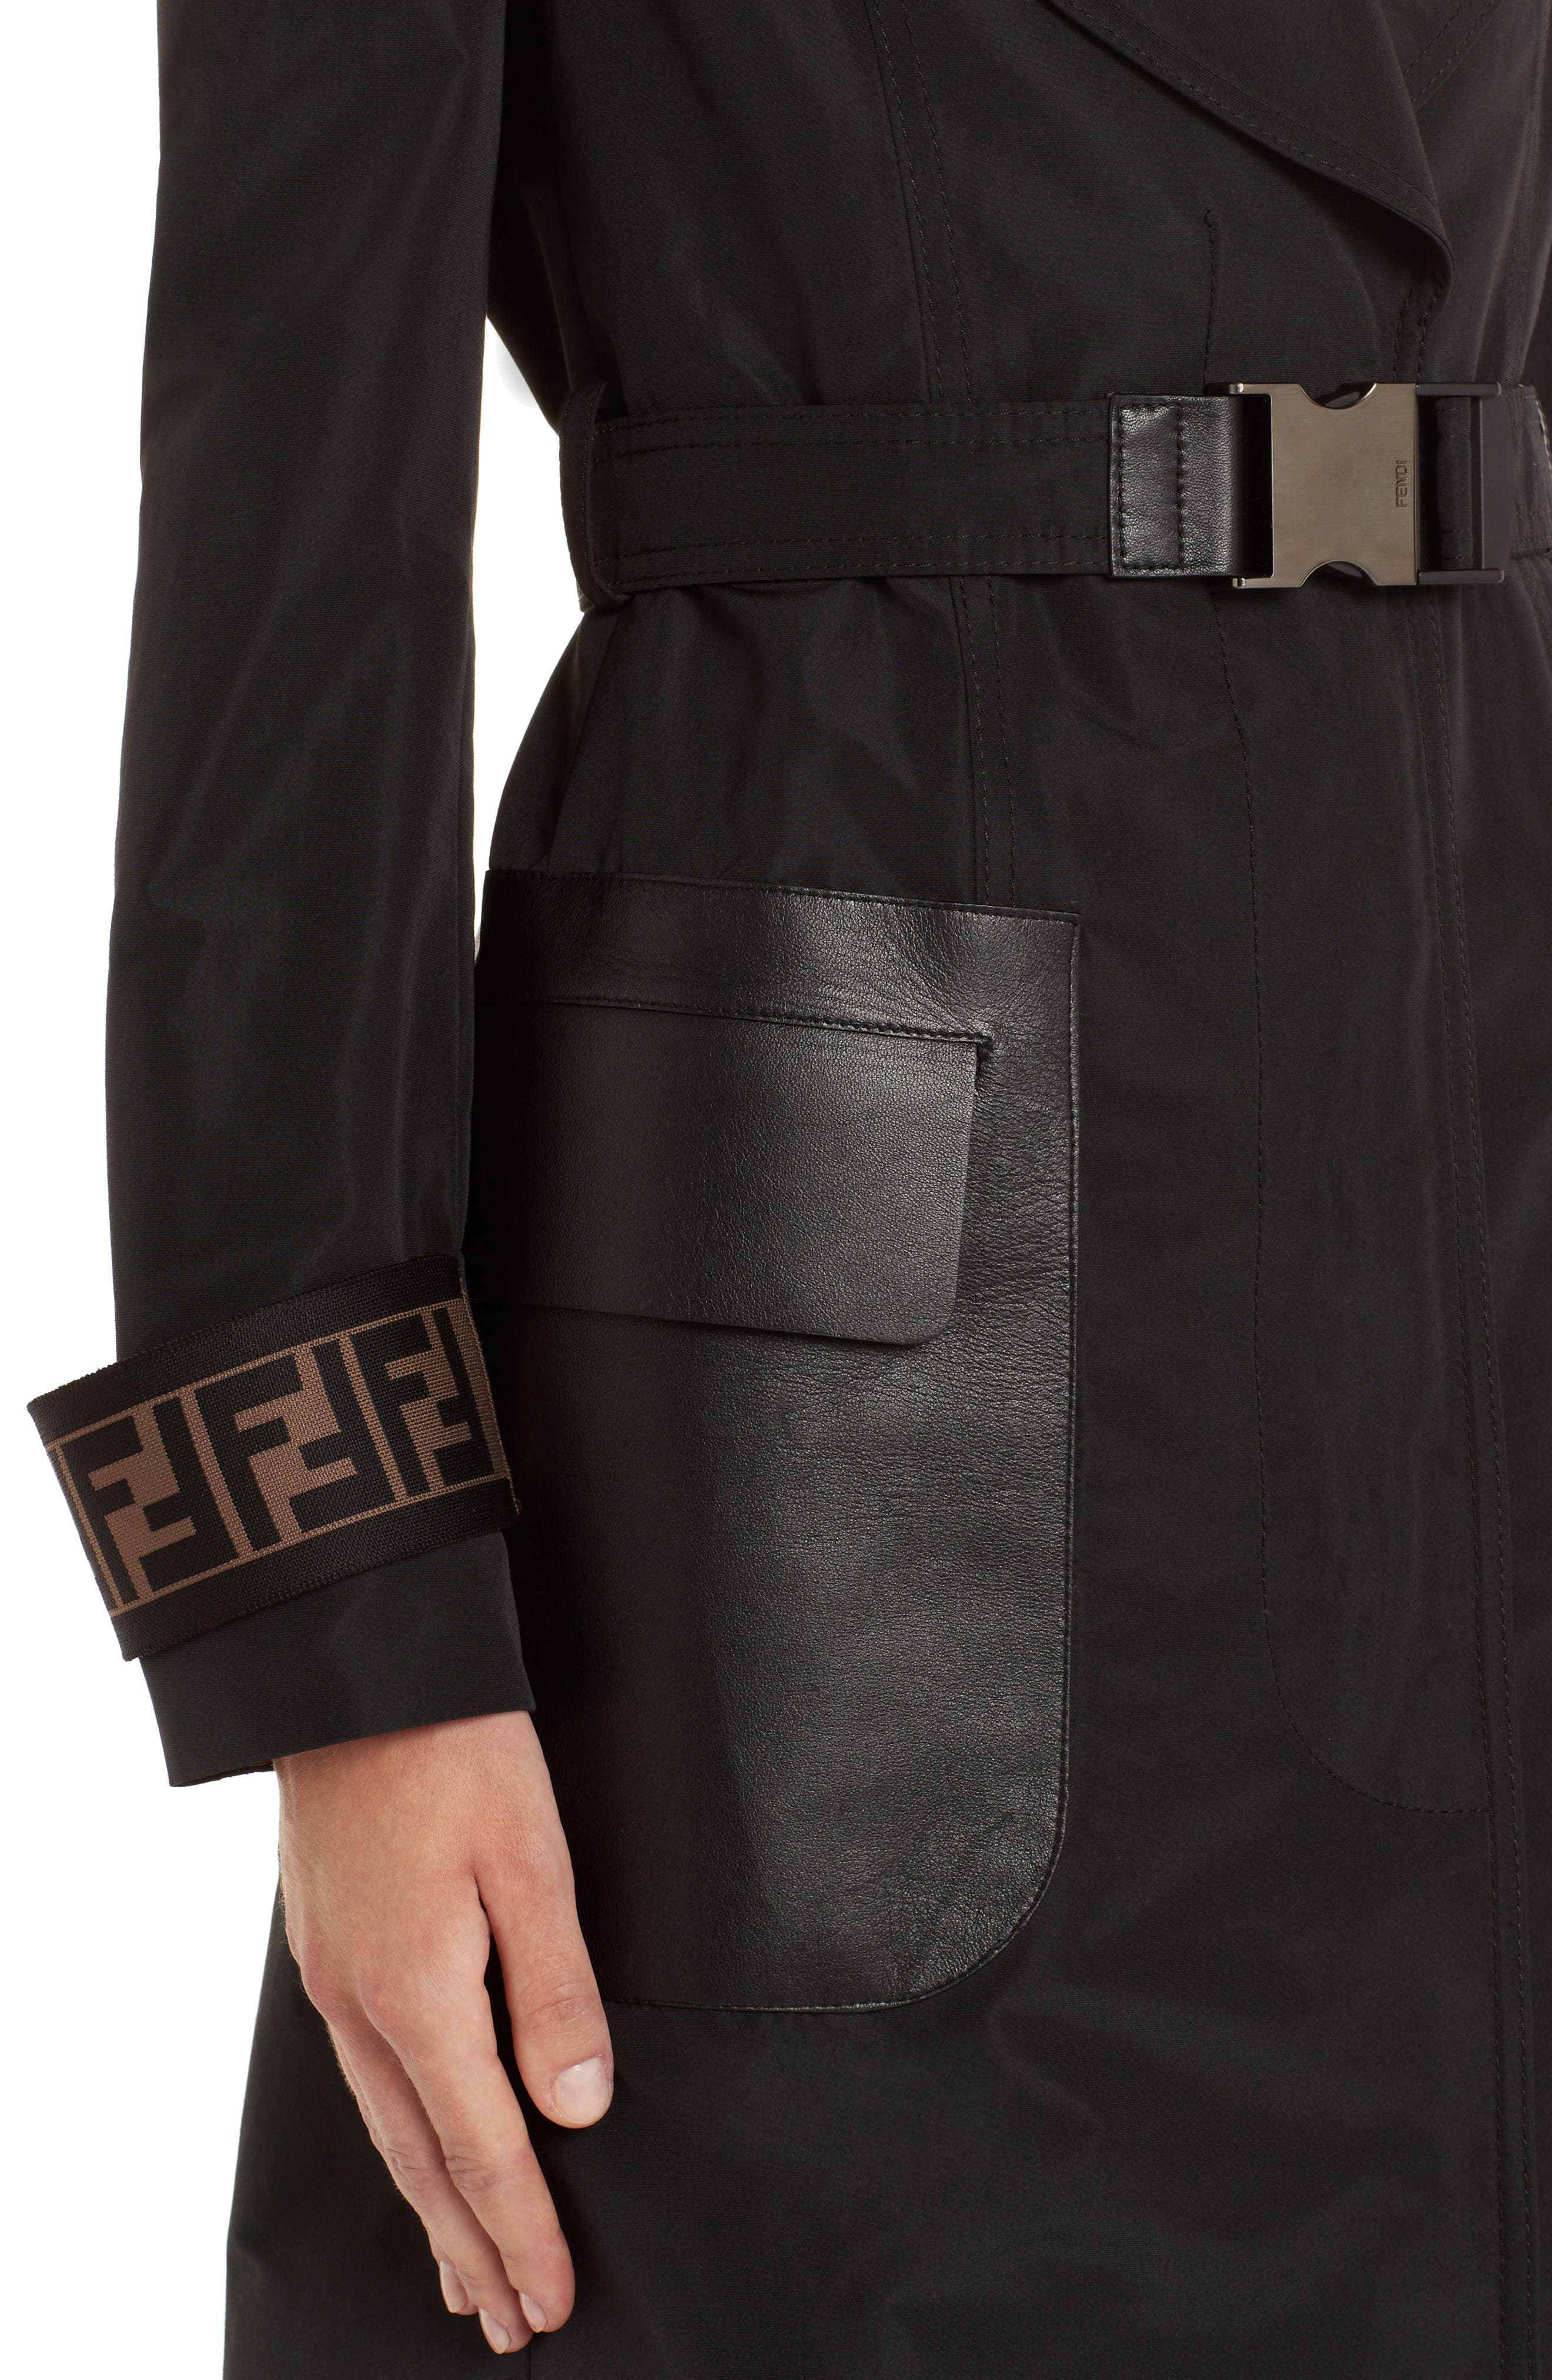 Leather Pocket Trench Coat,                             Alternate thumbnail 4, color,                             BLACK